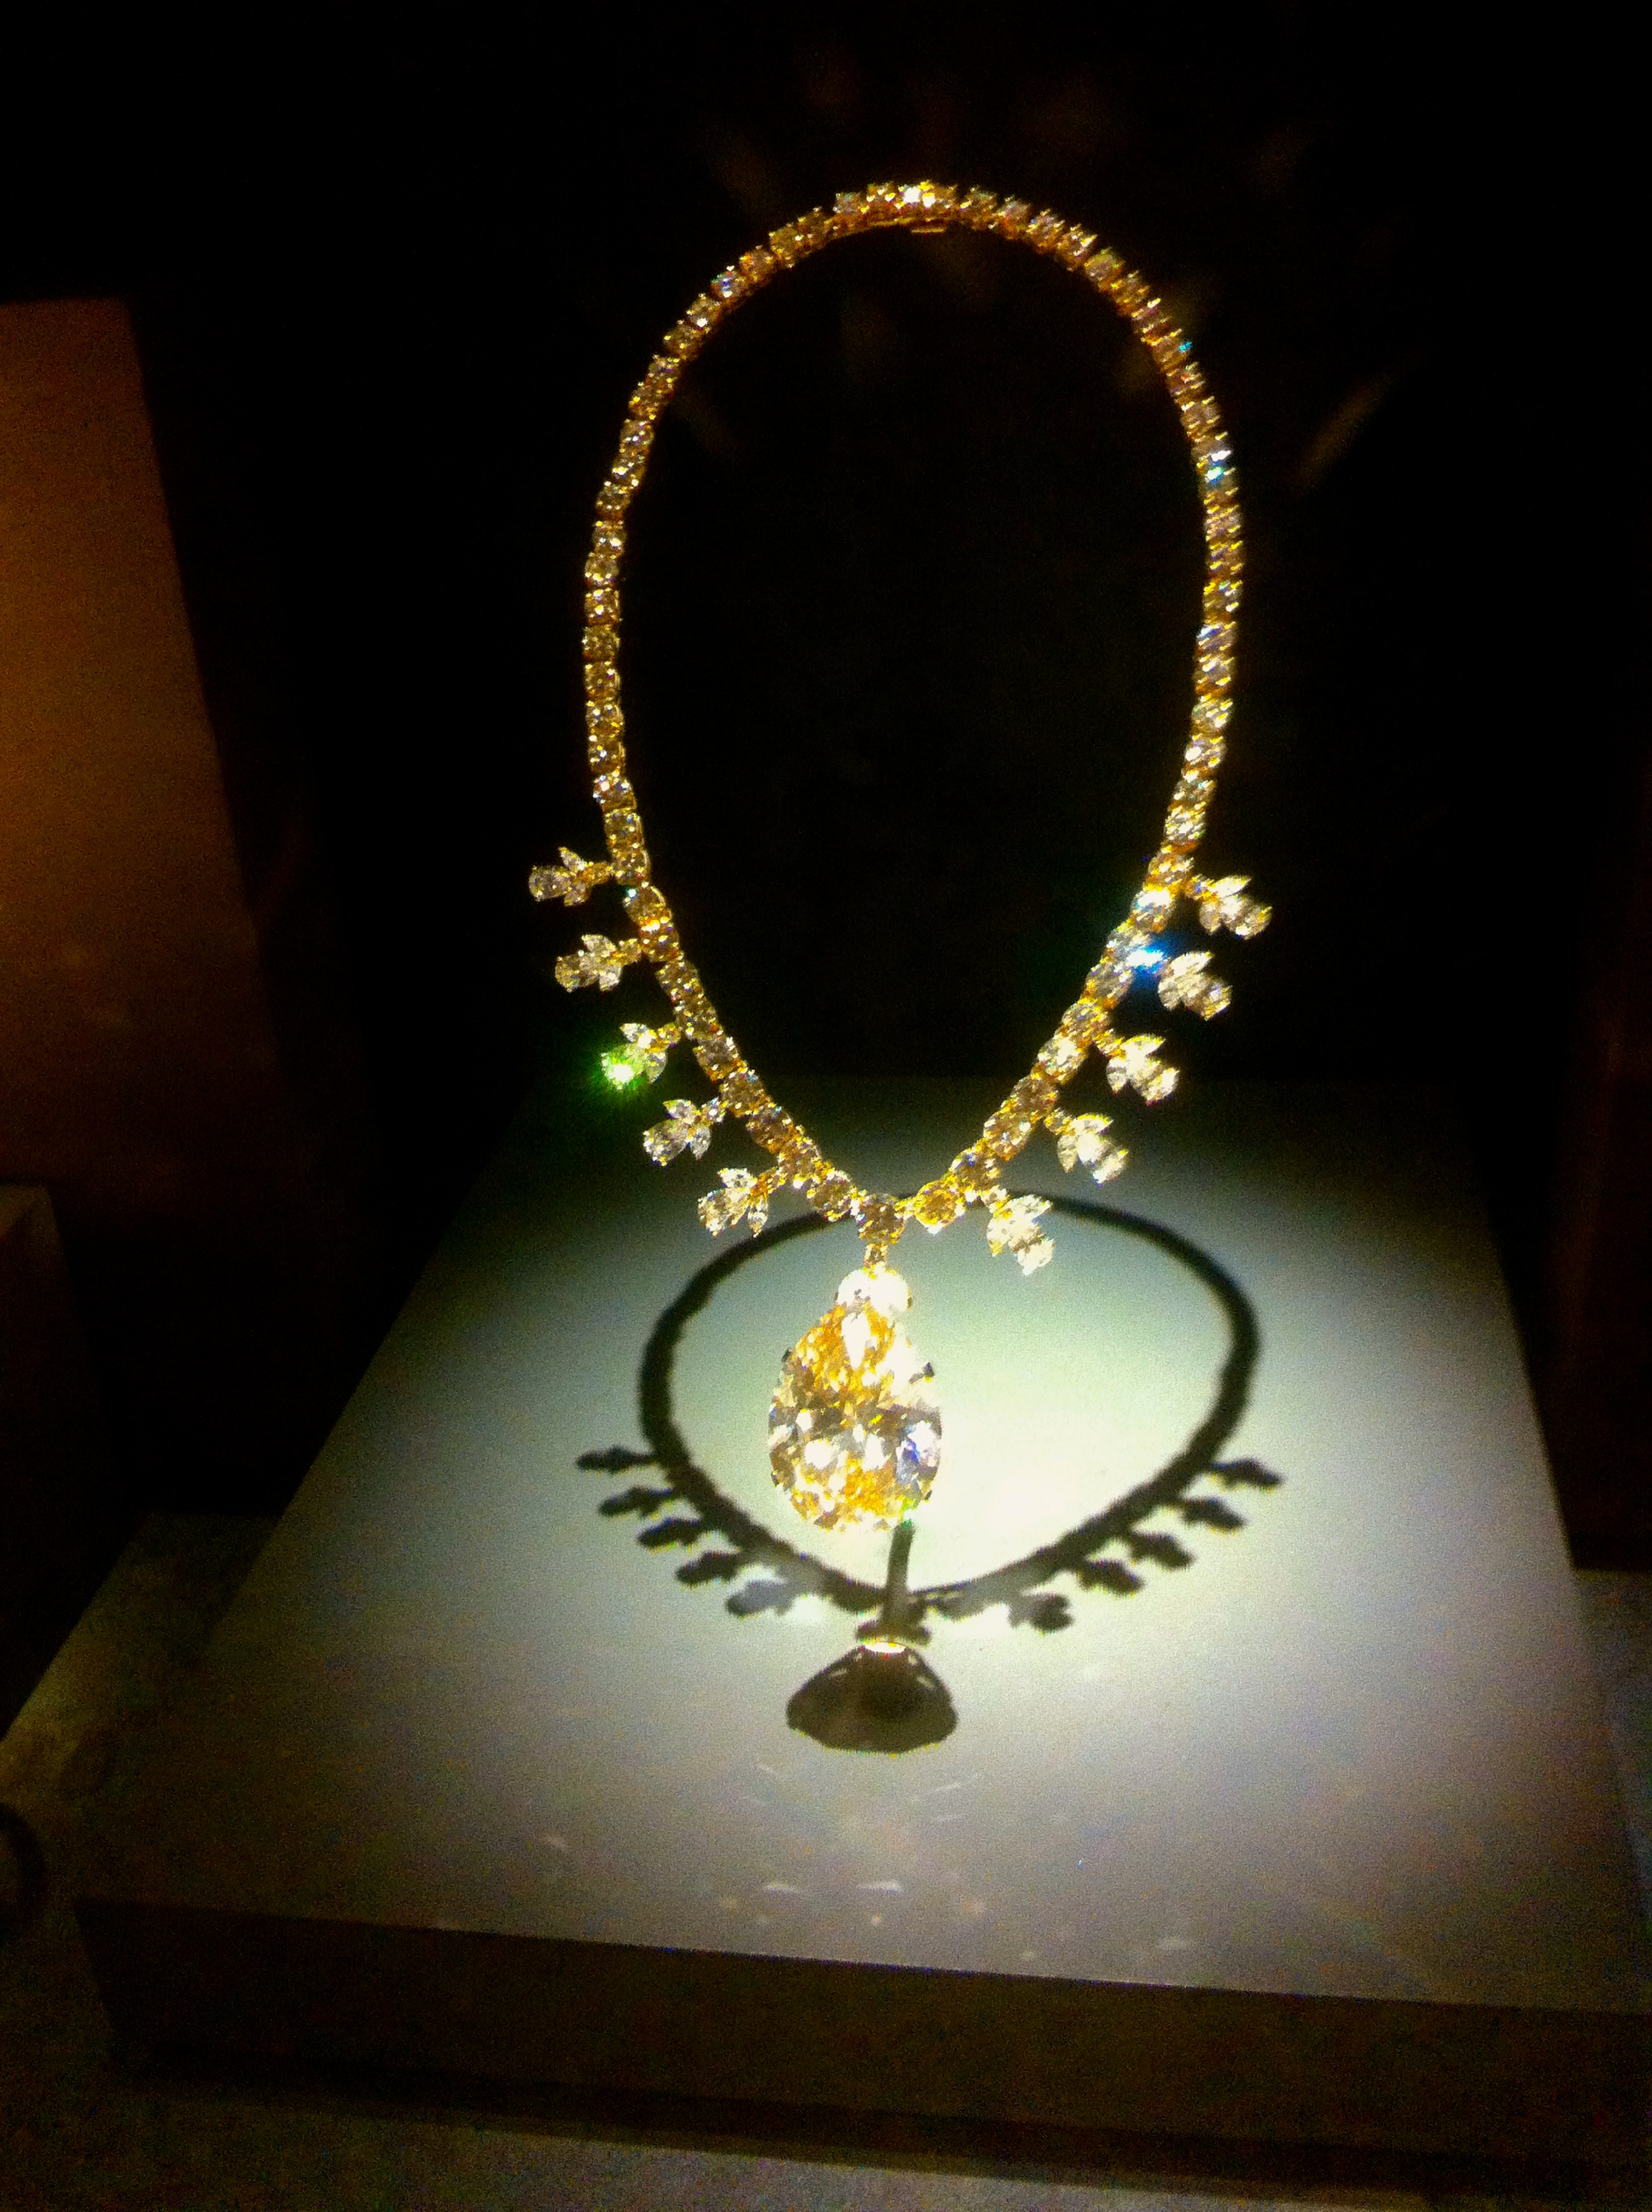 the curse of the hope diamond Tavernier blue: legend behind the legend behind the hope diamond by tales about the curse he donated the diamond with the hope that it would.